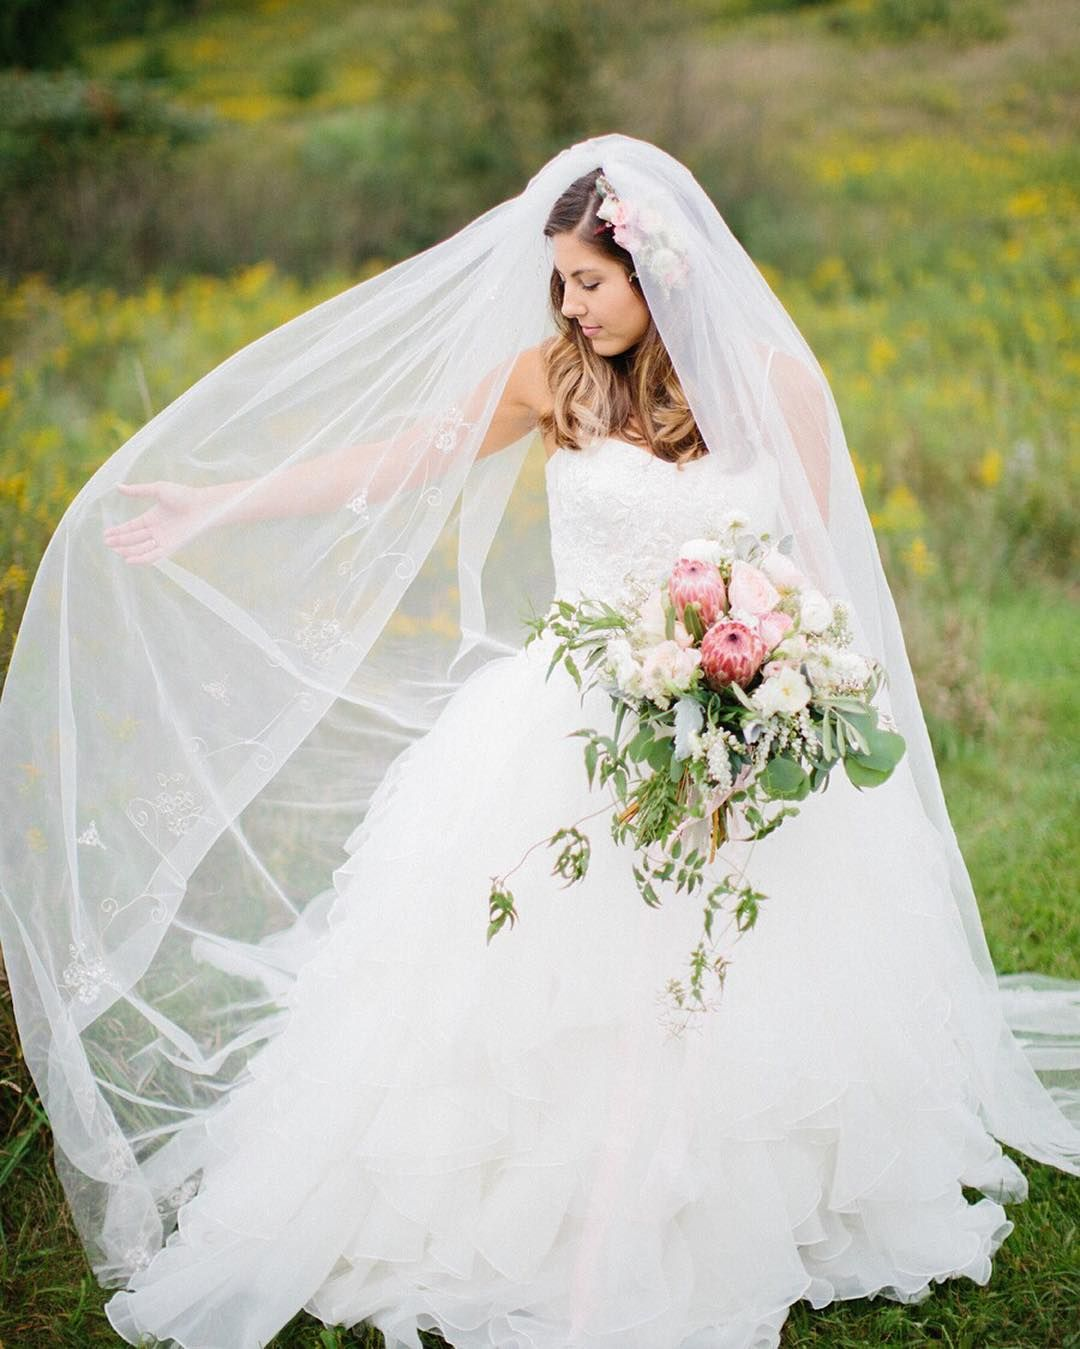 A bridal ball gown and cathedral veil make for a classic